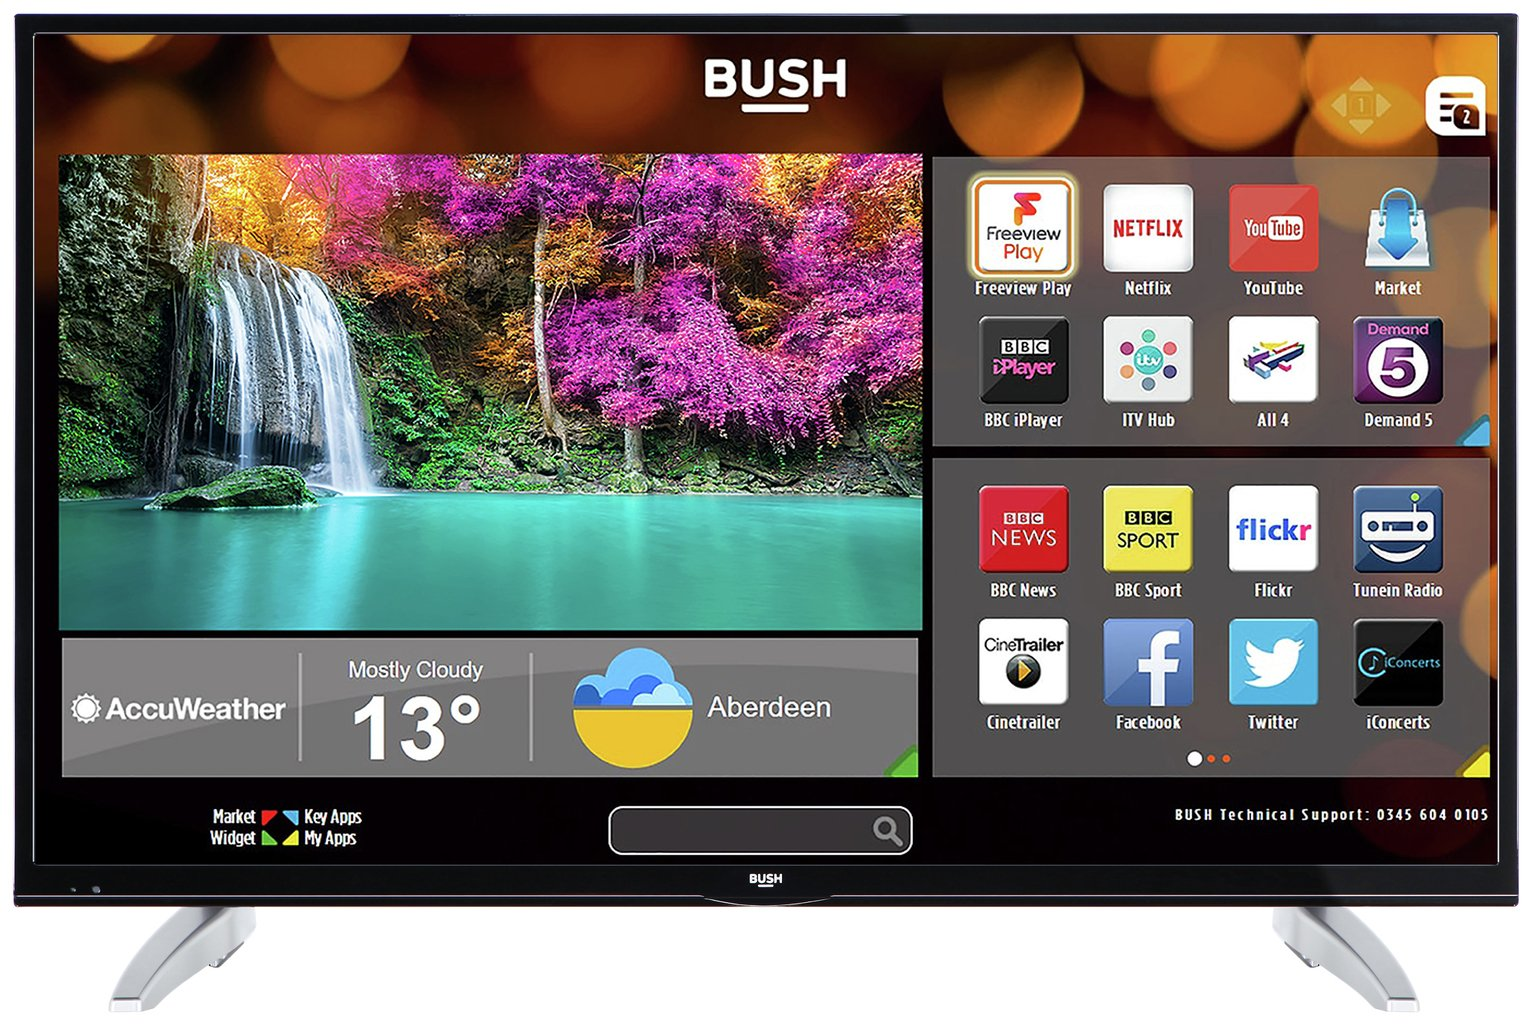 Bush 49 Inch Smart 4K UHD TV with HDR